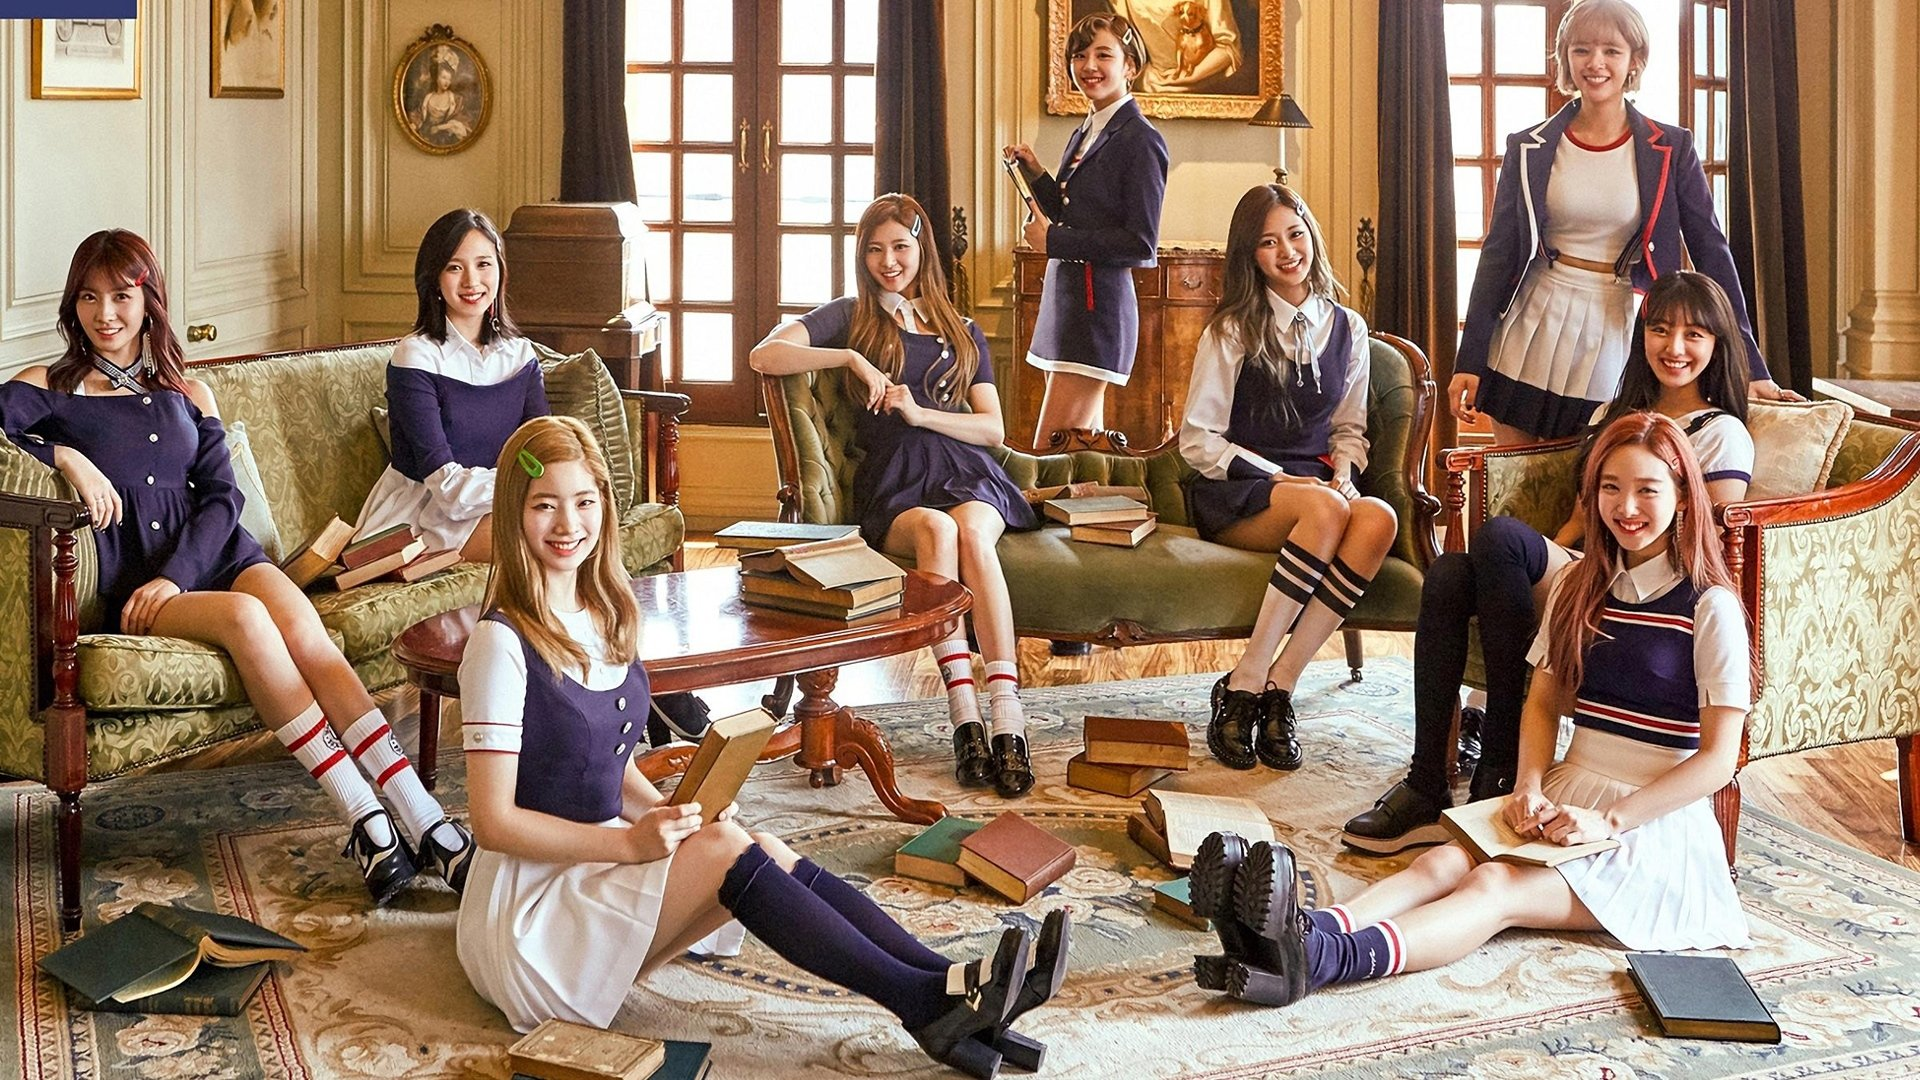 Twice Hd Wallpaper Background Image 1920x1080 Id 858068